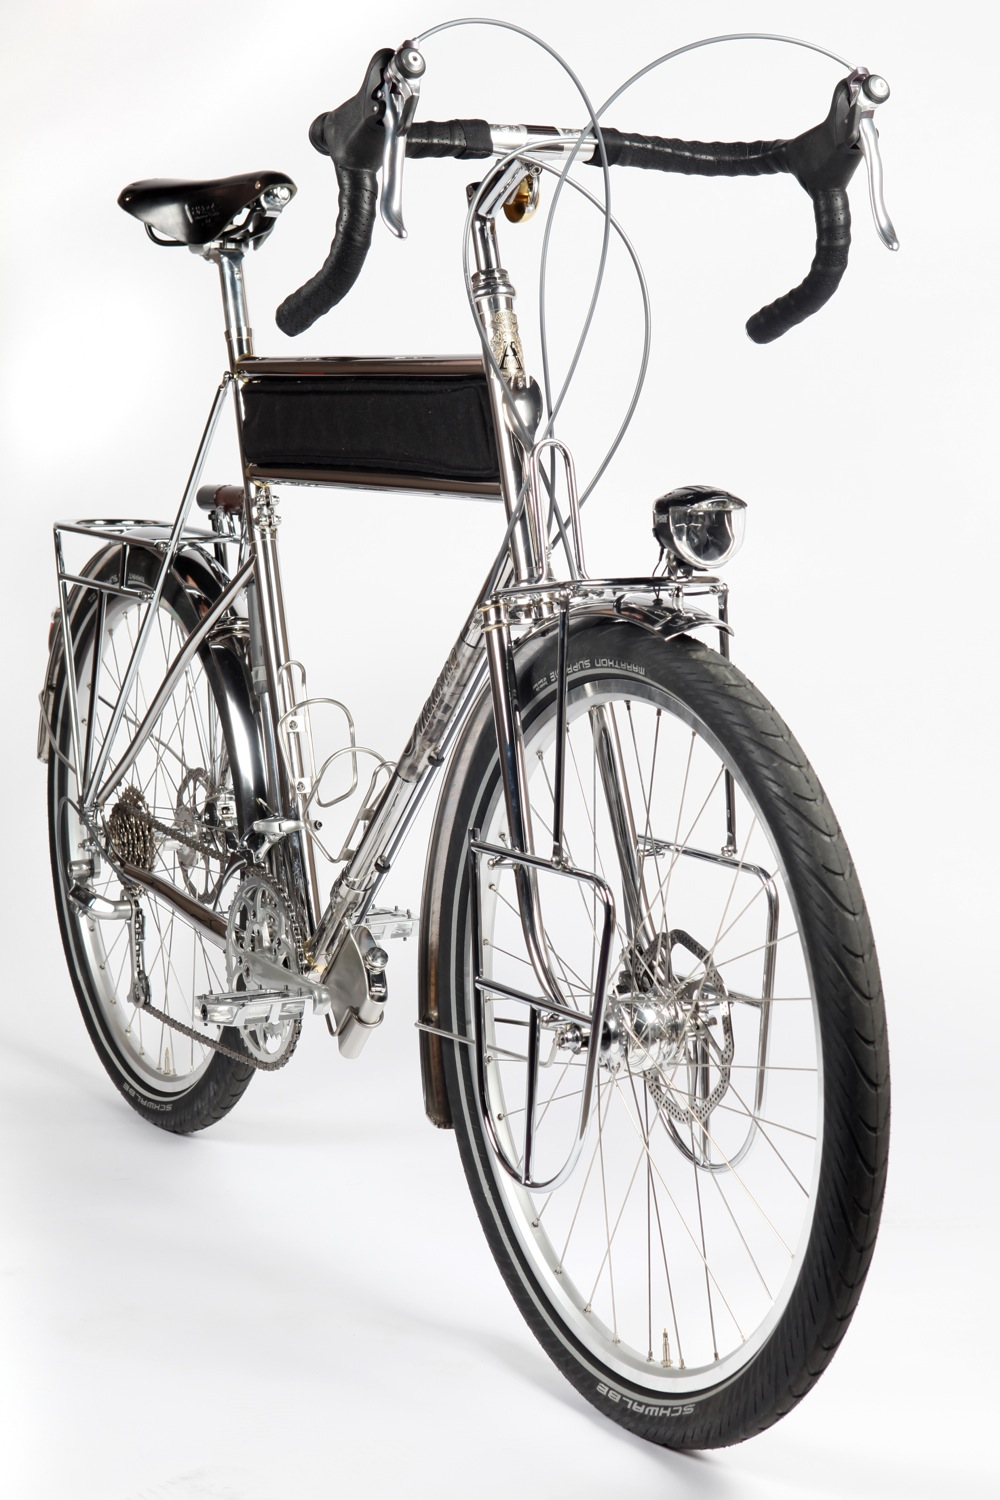 Stainless Touring Bike For Sale